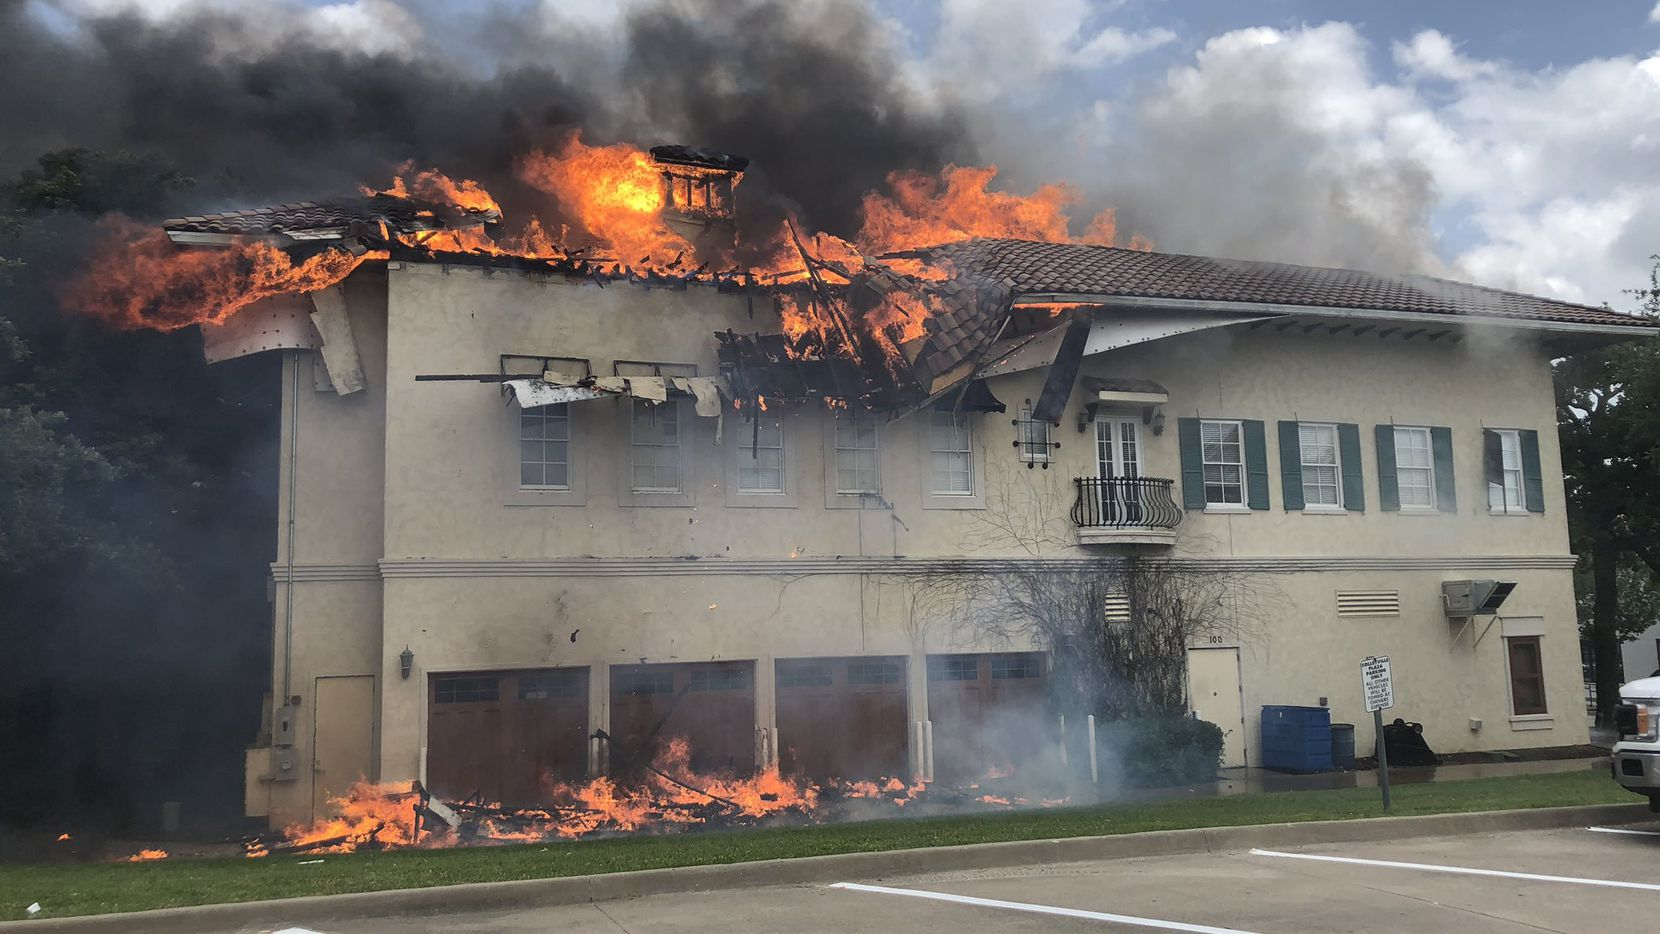 The roof of the building, located at 35 Village Lane, caught fire around 12:37 p.m., Colleyville community relations specialist Erin Spicer said.